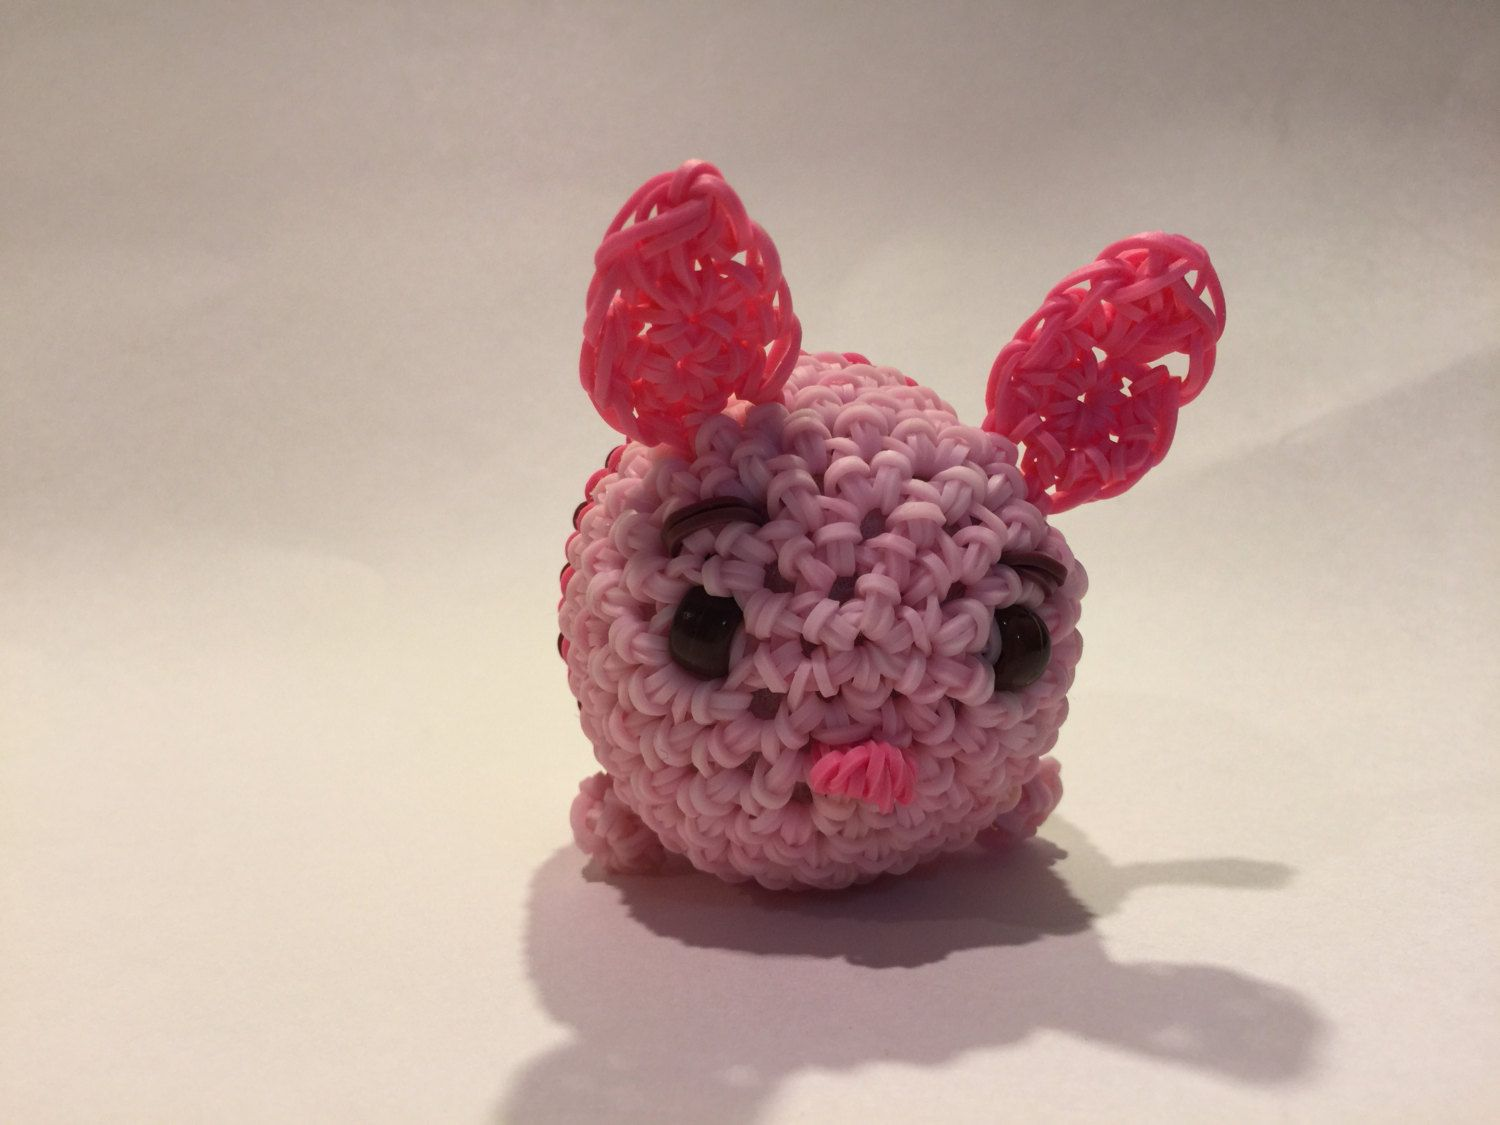 Amigurumi Loom Patterns : Disneys piglet tsum tsum rubber band figure amigurumi by